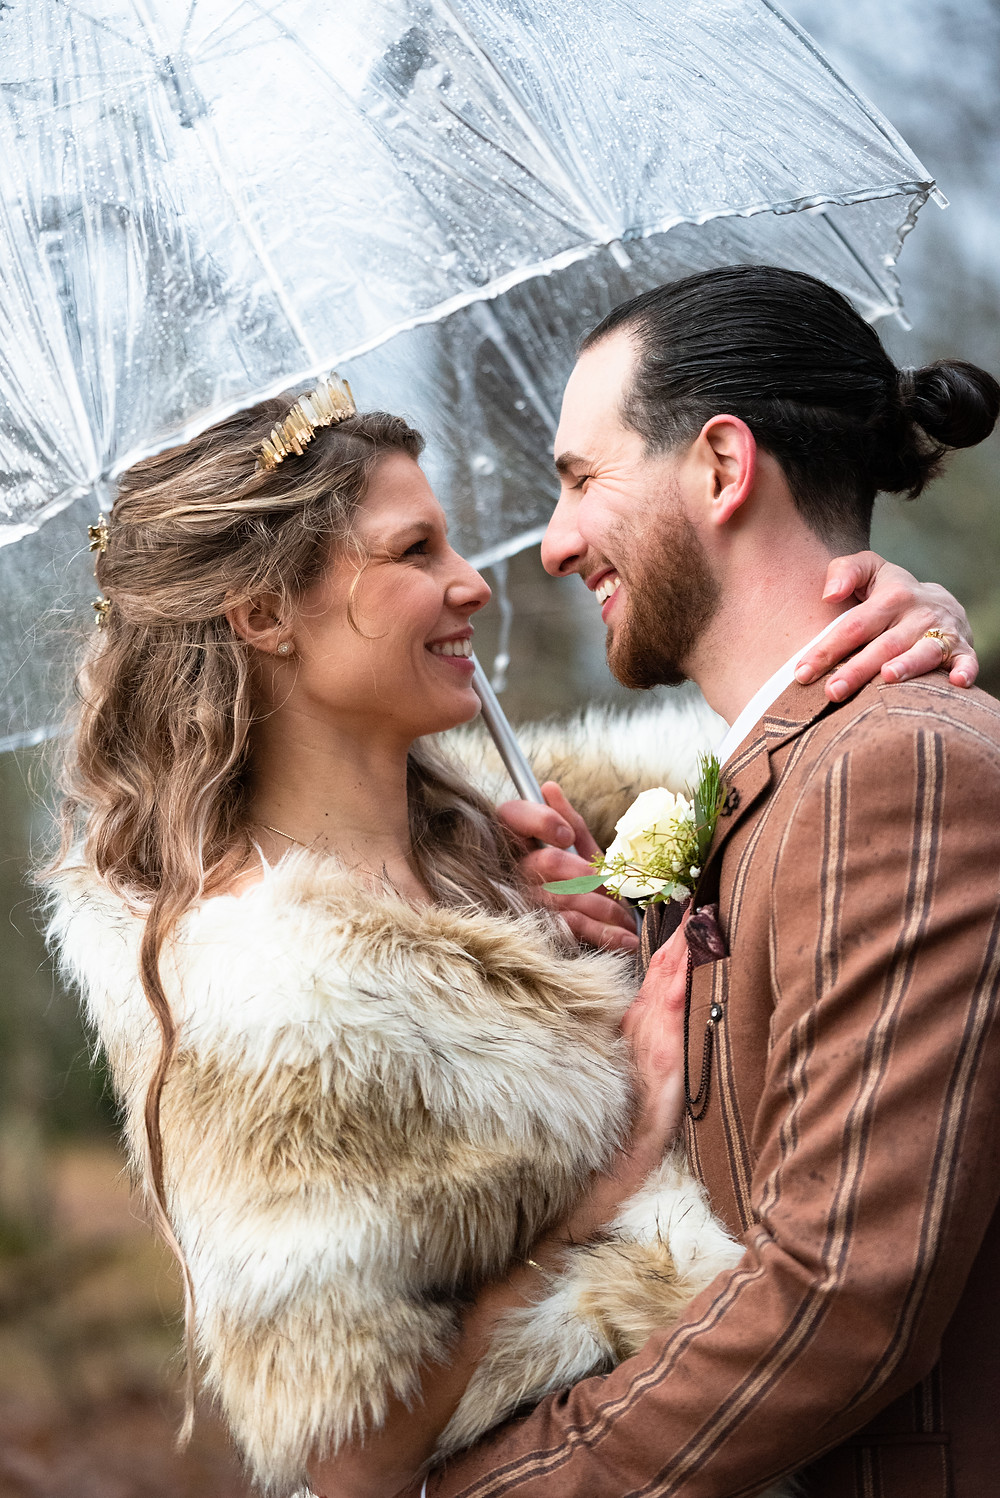 Bride and groom portrait with clear umbrella in the rain